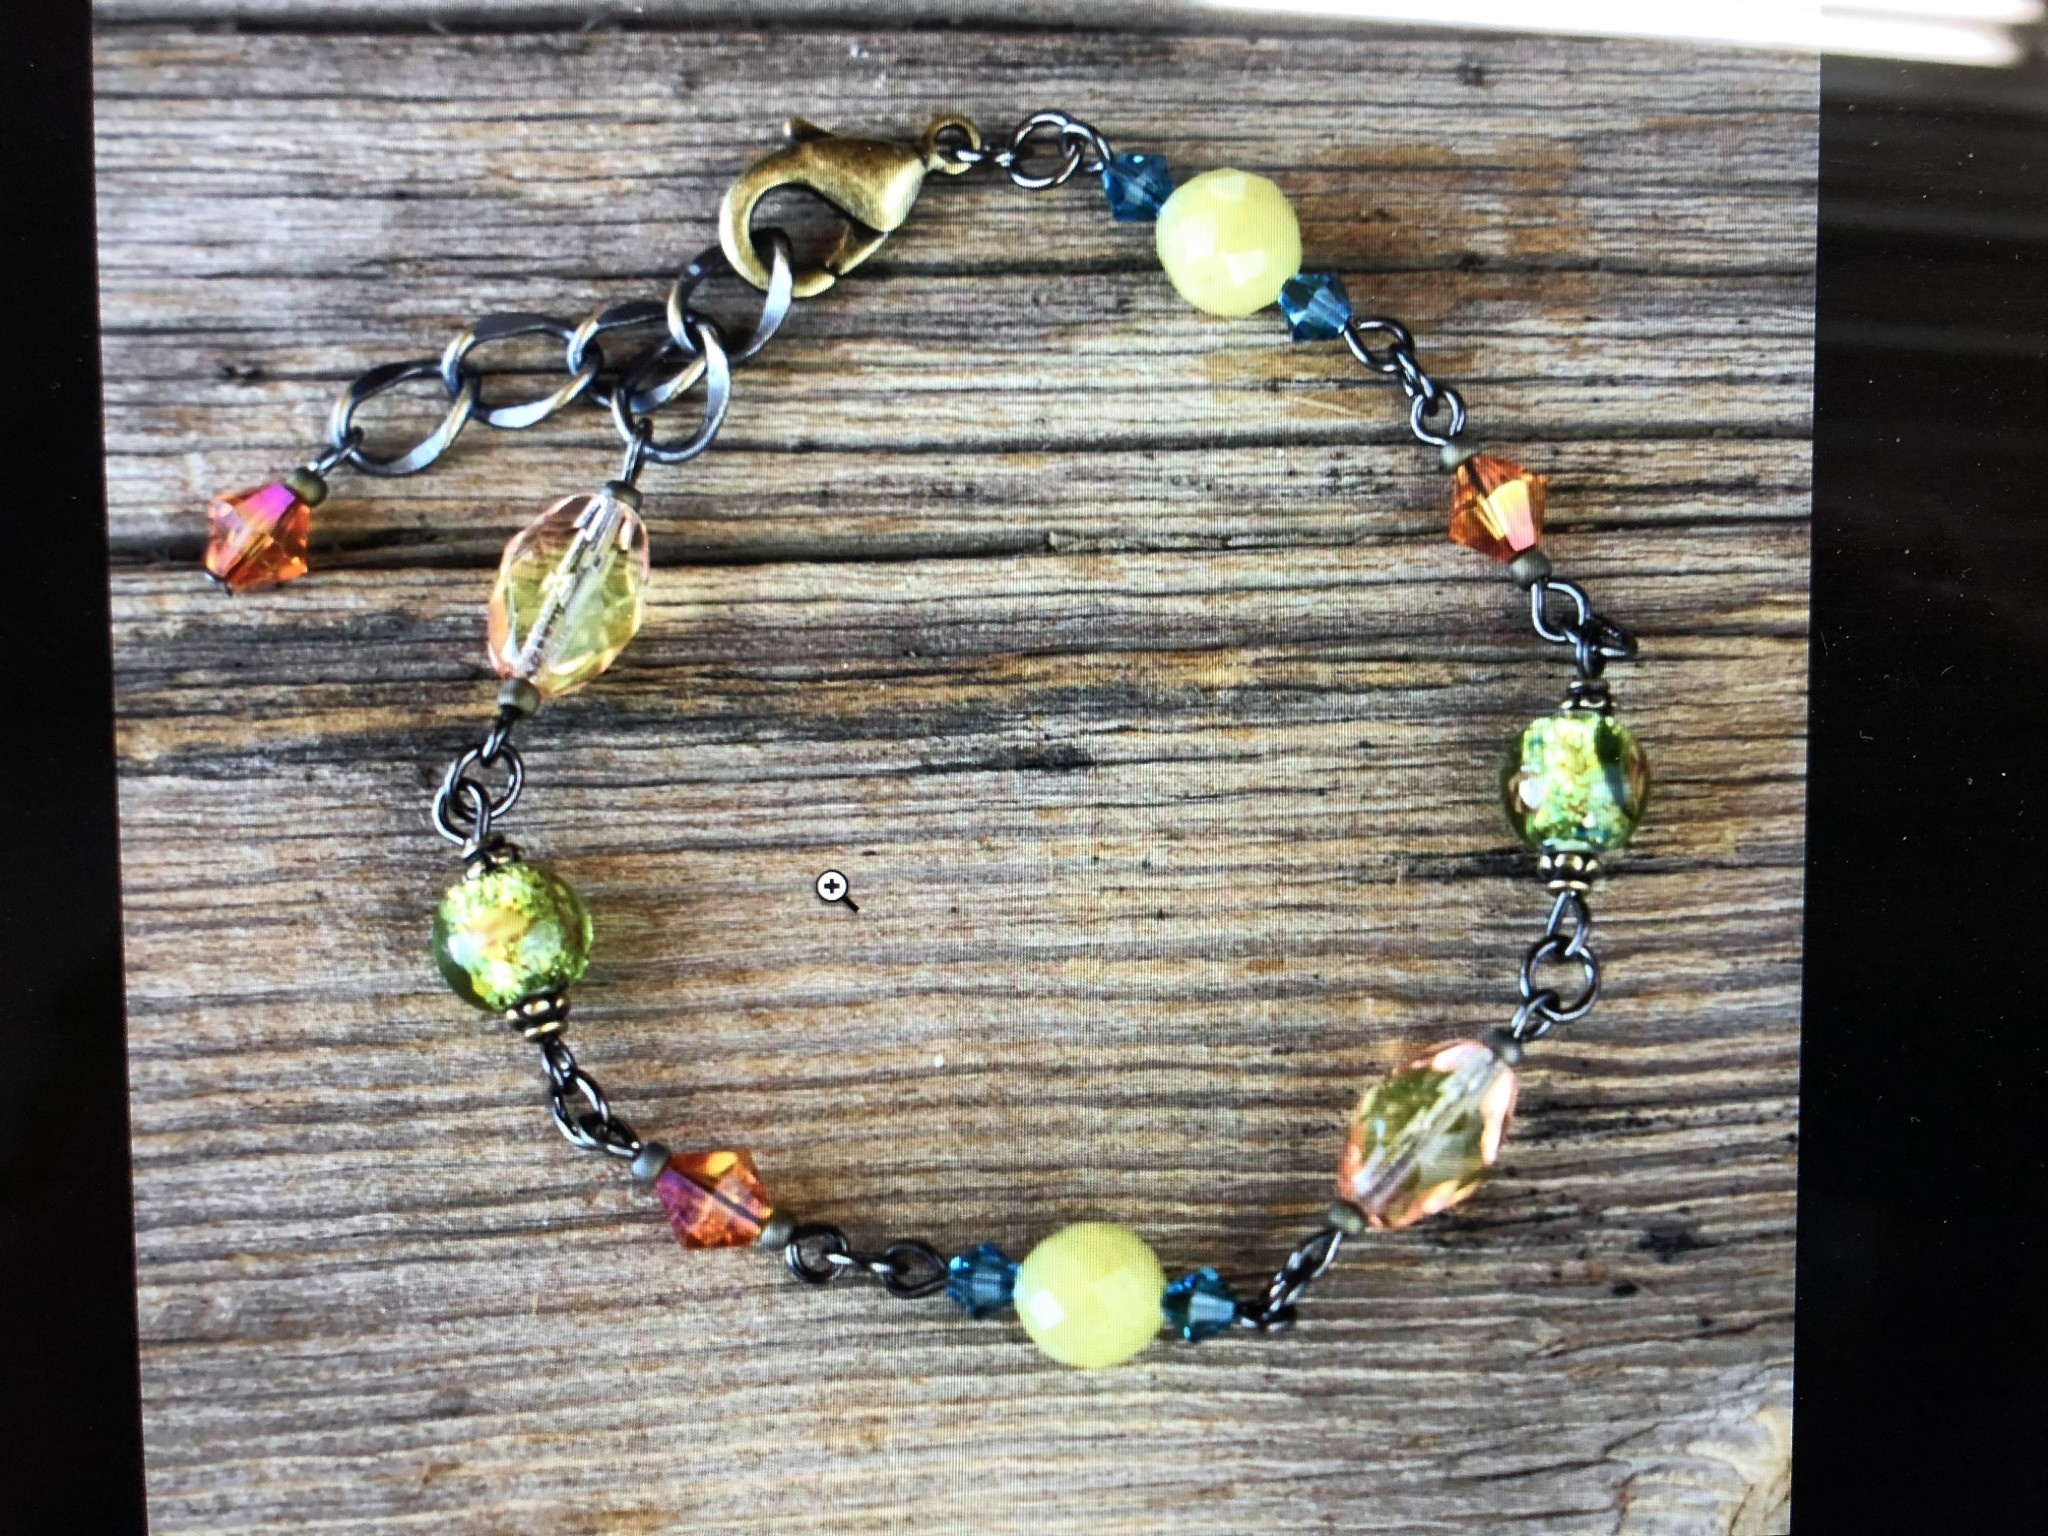 cool water jewelry BC102-199 Bracelet: YL Jade/Foil/Crystals/Glass Beads, Happy Together